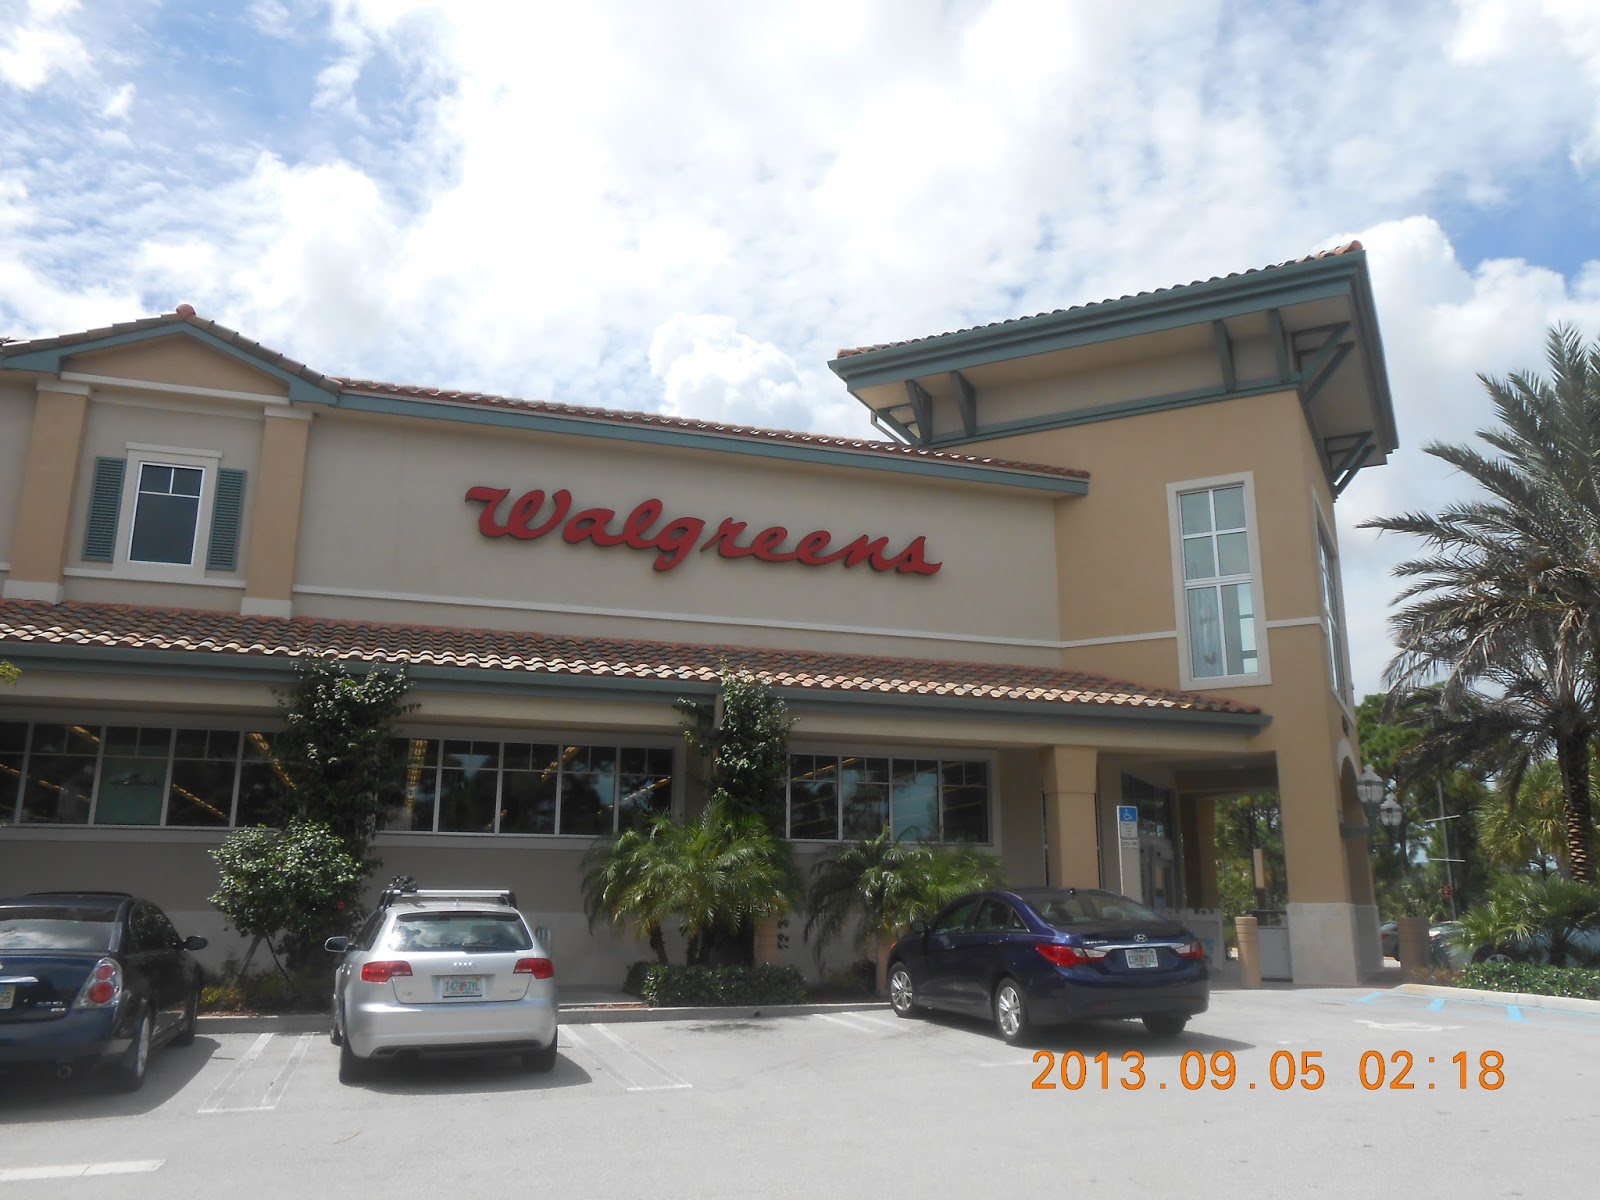 Walgreens West Palm Beach Okeechobee